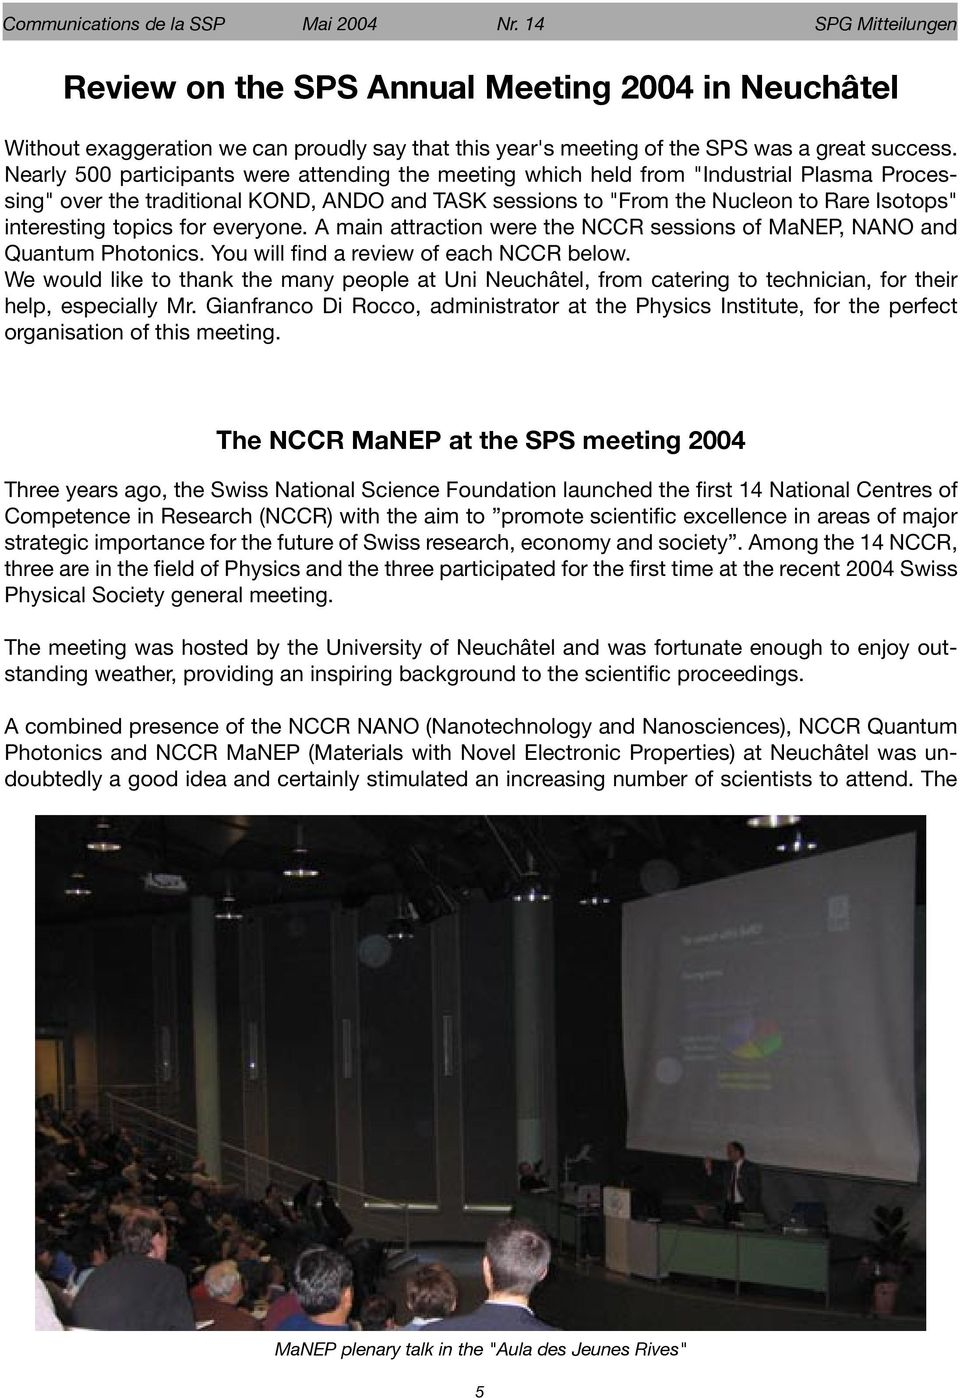 "Nearly 500 participants were attending the meeting which held from ""Industrial Plasma Processing"" over the traditional KOND, ANDO and TASK sessions to ""From the Nucleon to Rare Isotops"" interesting"